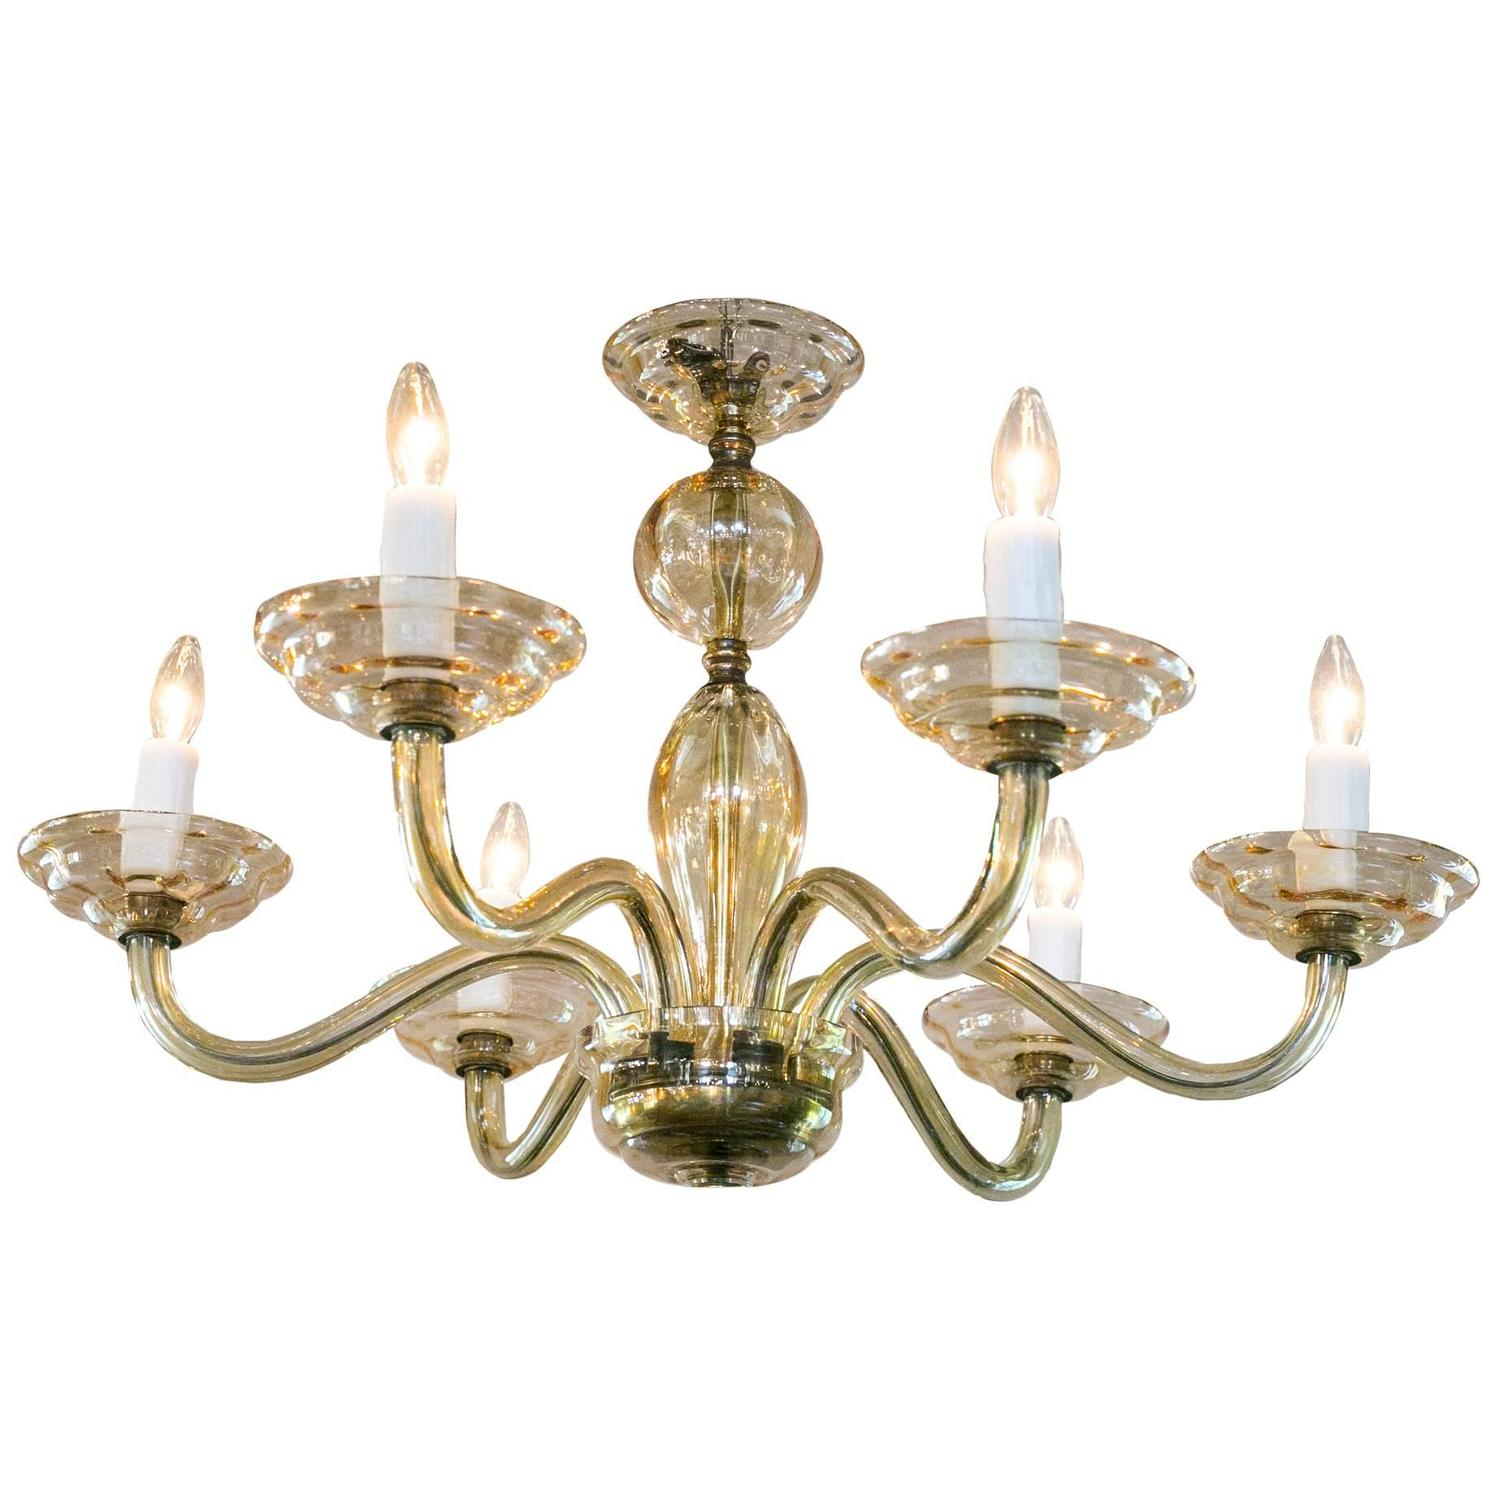 Vintage Murano Chandelier With Six Arms For Sale At 1stdibs